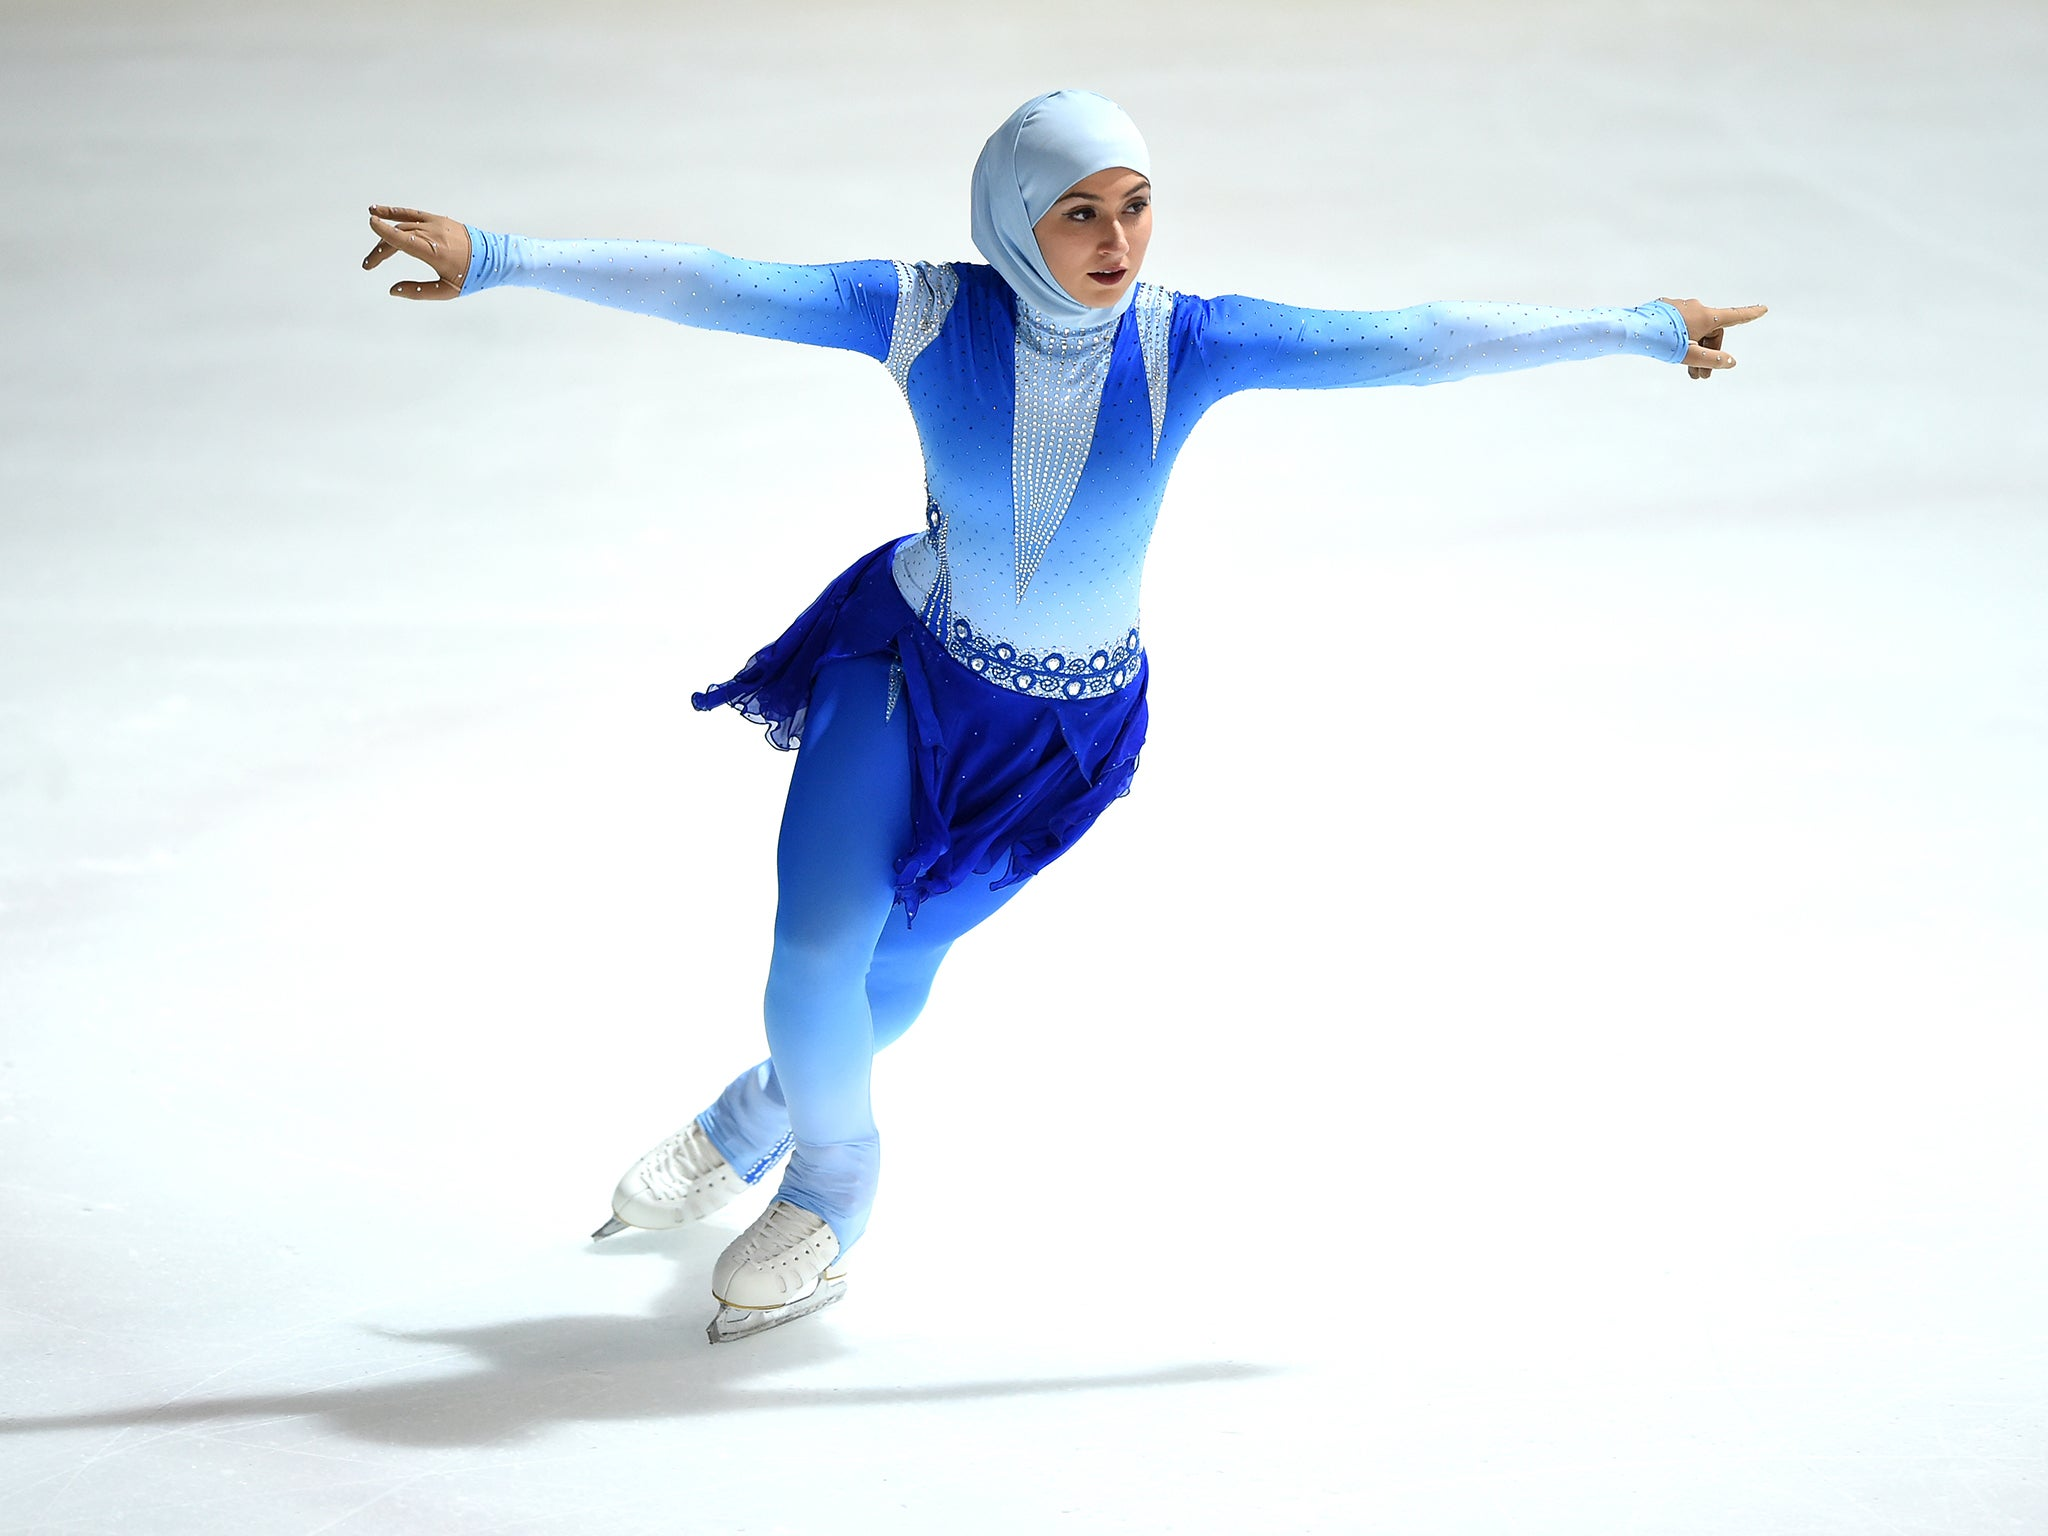 Image result for ENGAGING FIGURE SKATING